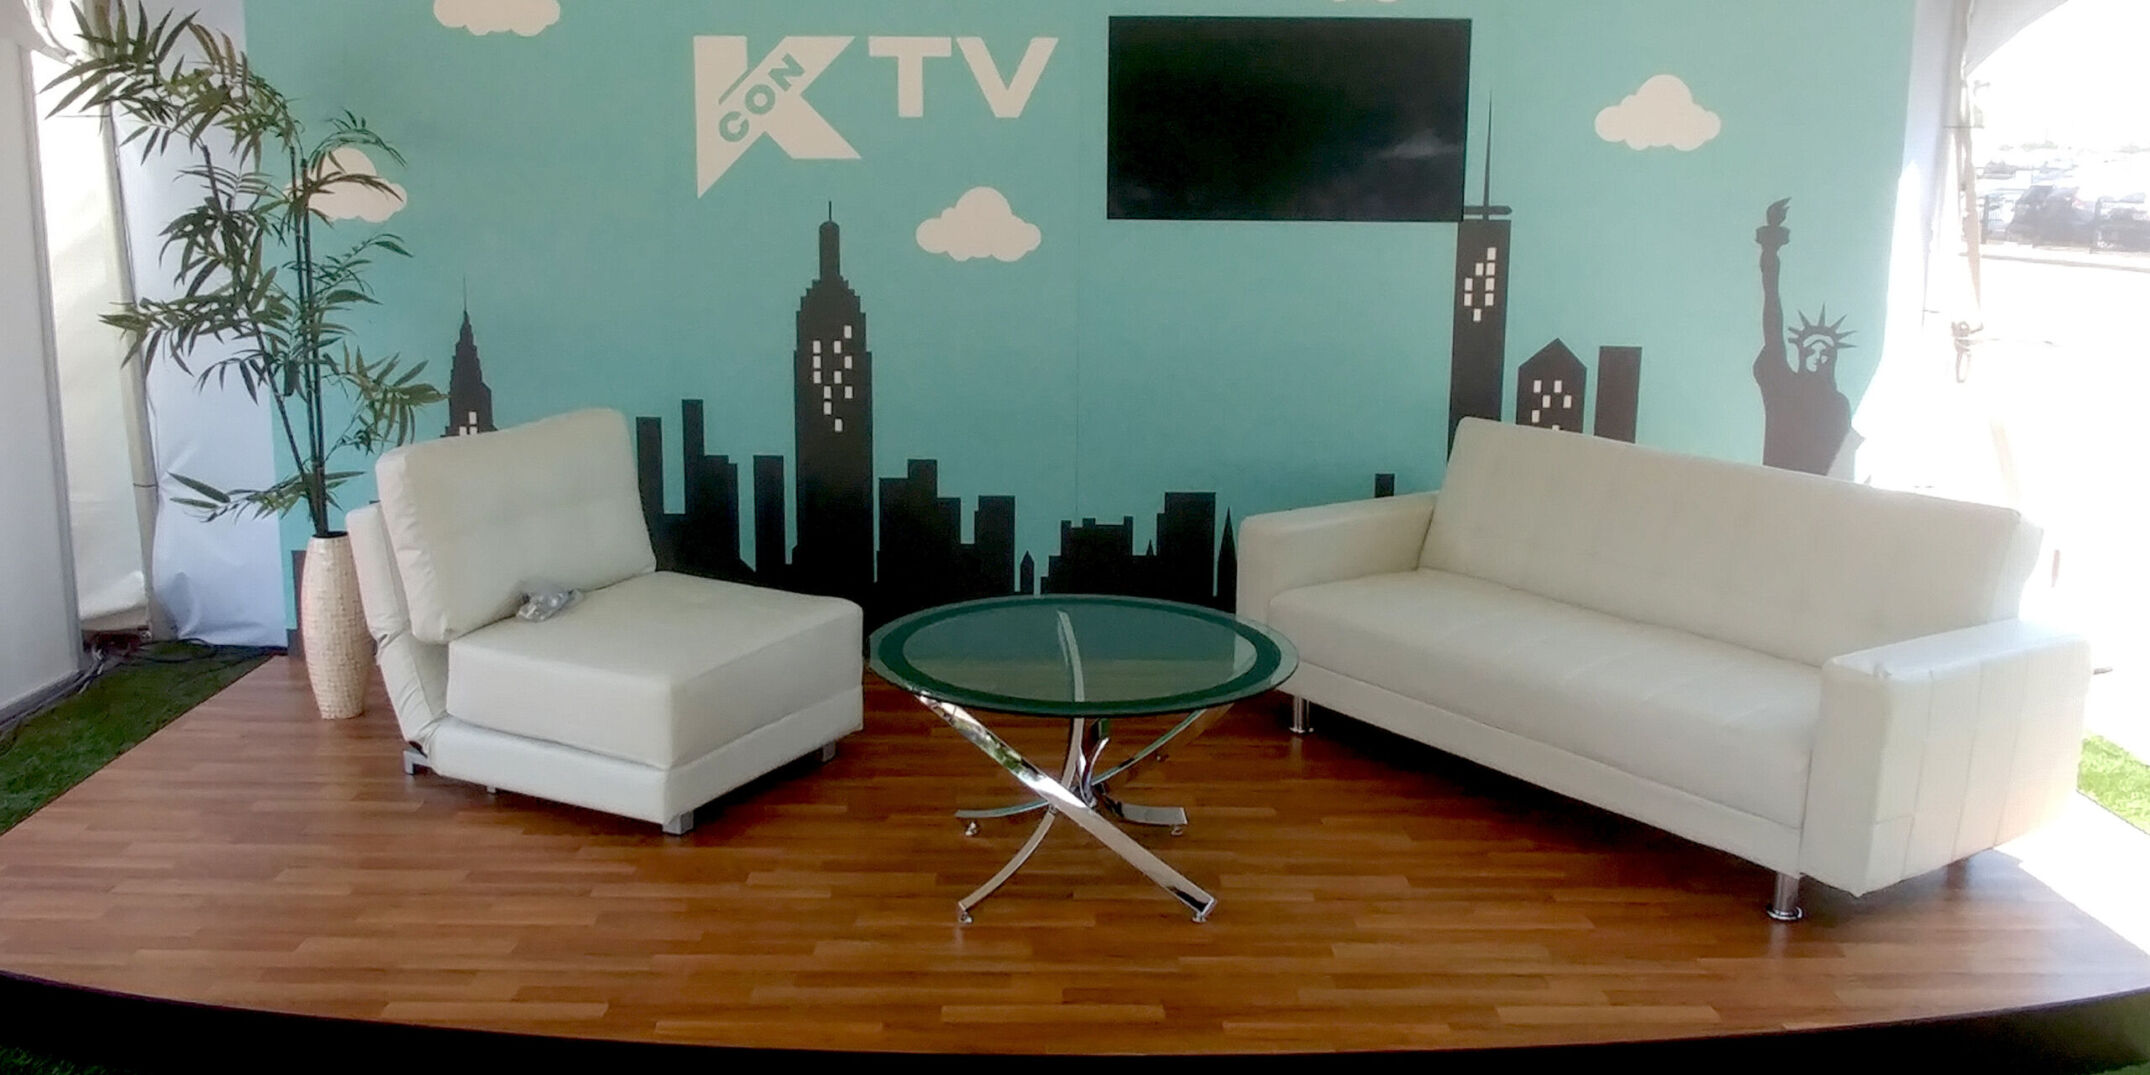 TV interview demo backdrop set stage for Kcon with graphic wall, wood flooring, monitor and modern furniture by empire exhibits in new york